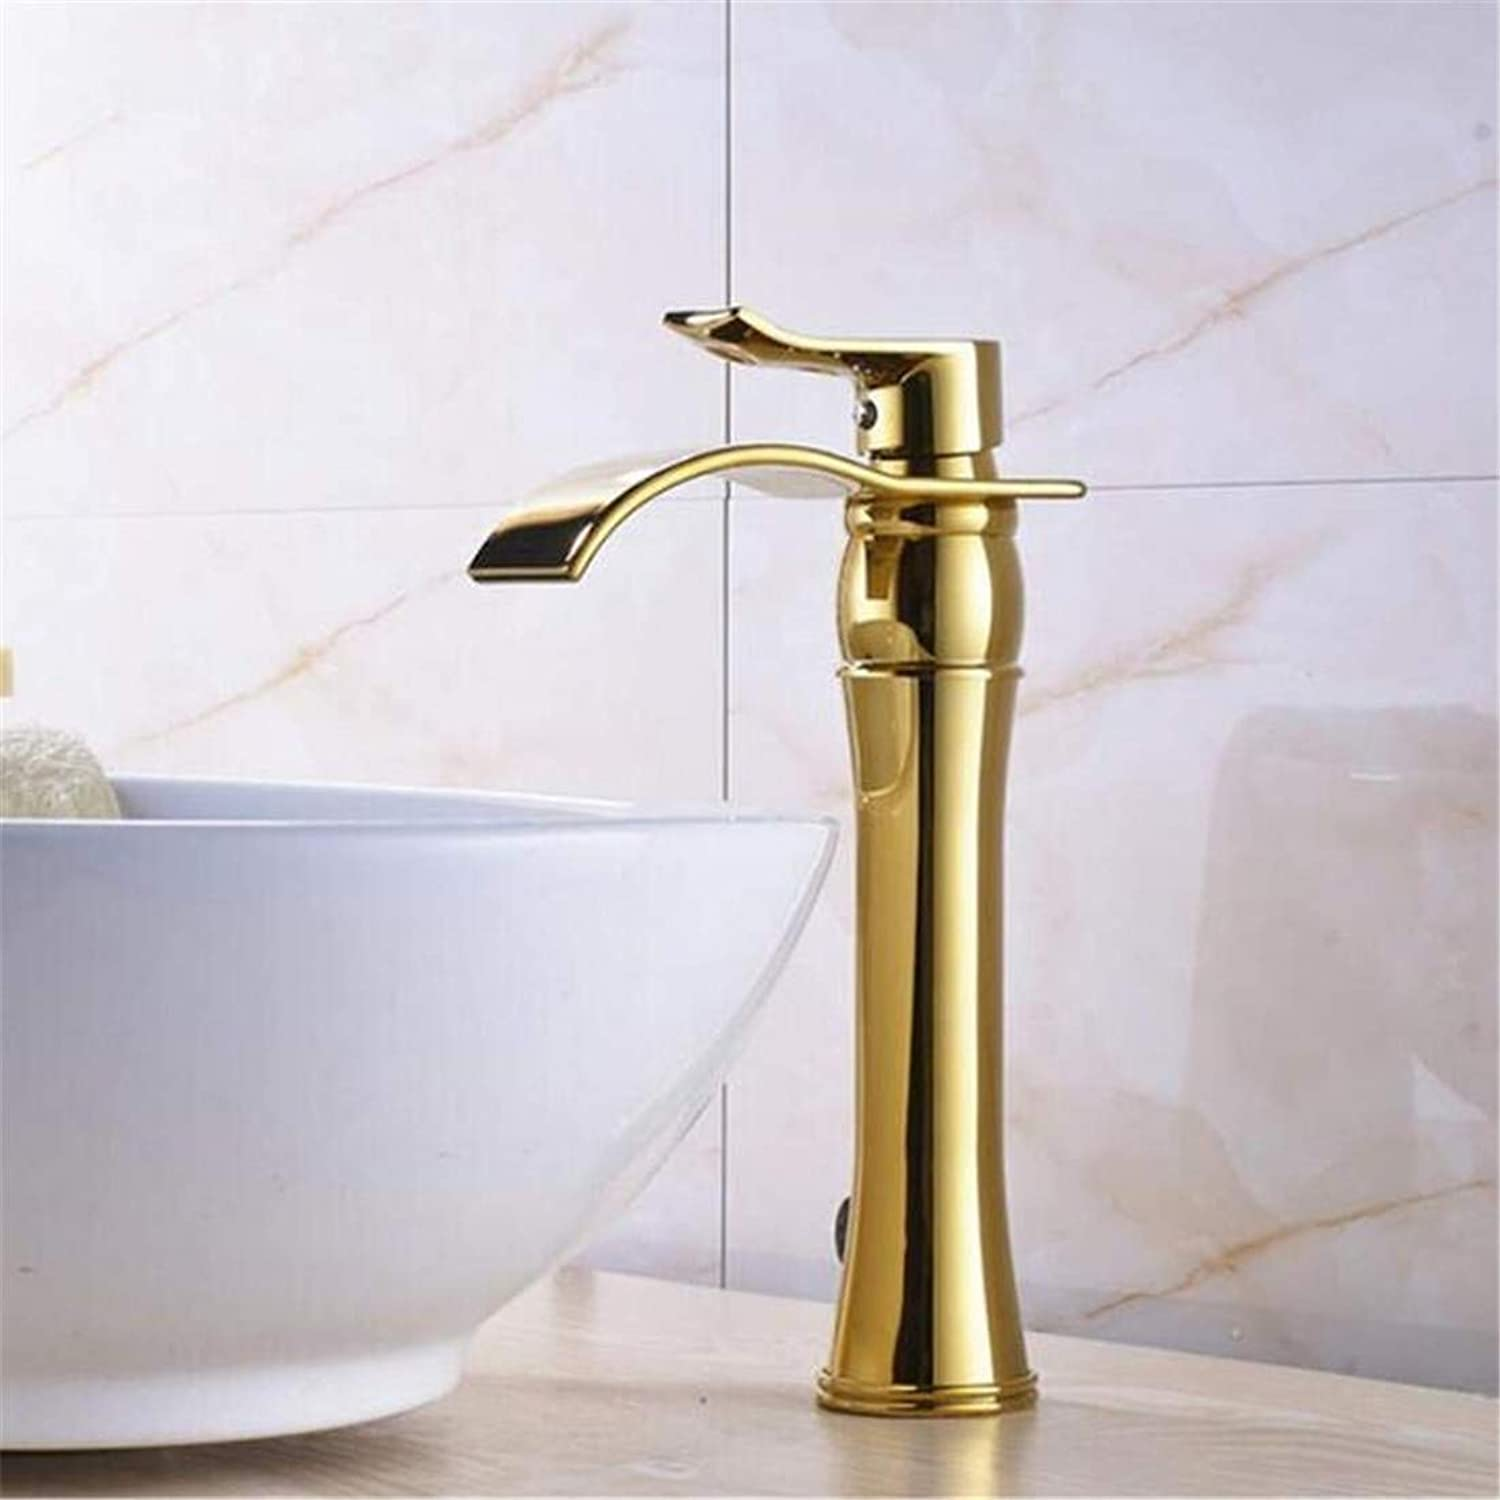 Faucet Vintage Plated Luxury Plating Faucet Faucet Washbasin Mixer Chrome Finished Spout Bathroom Basin Faucet with Mixer Tap